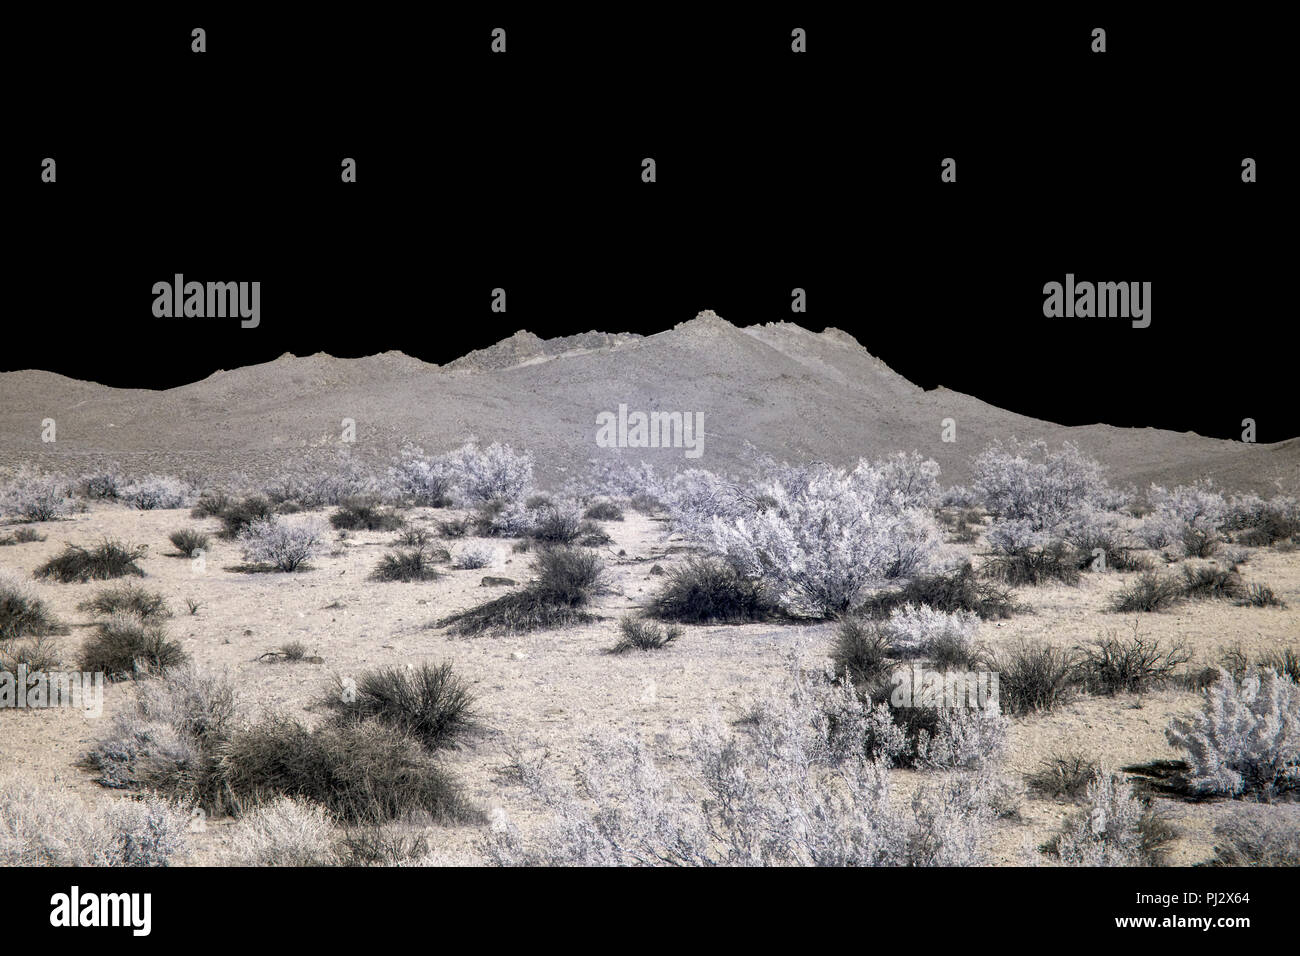 Desert valley with mountains under a black sky. - Stock Image